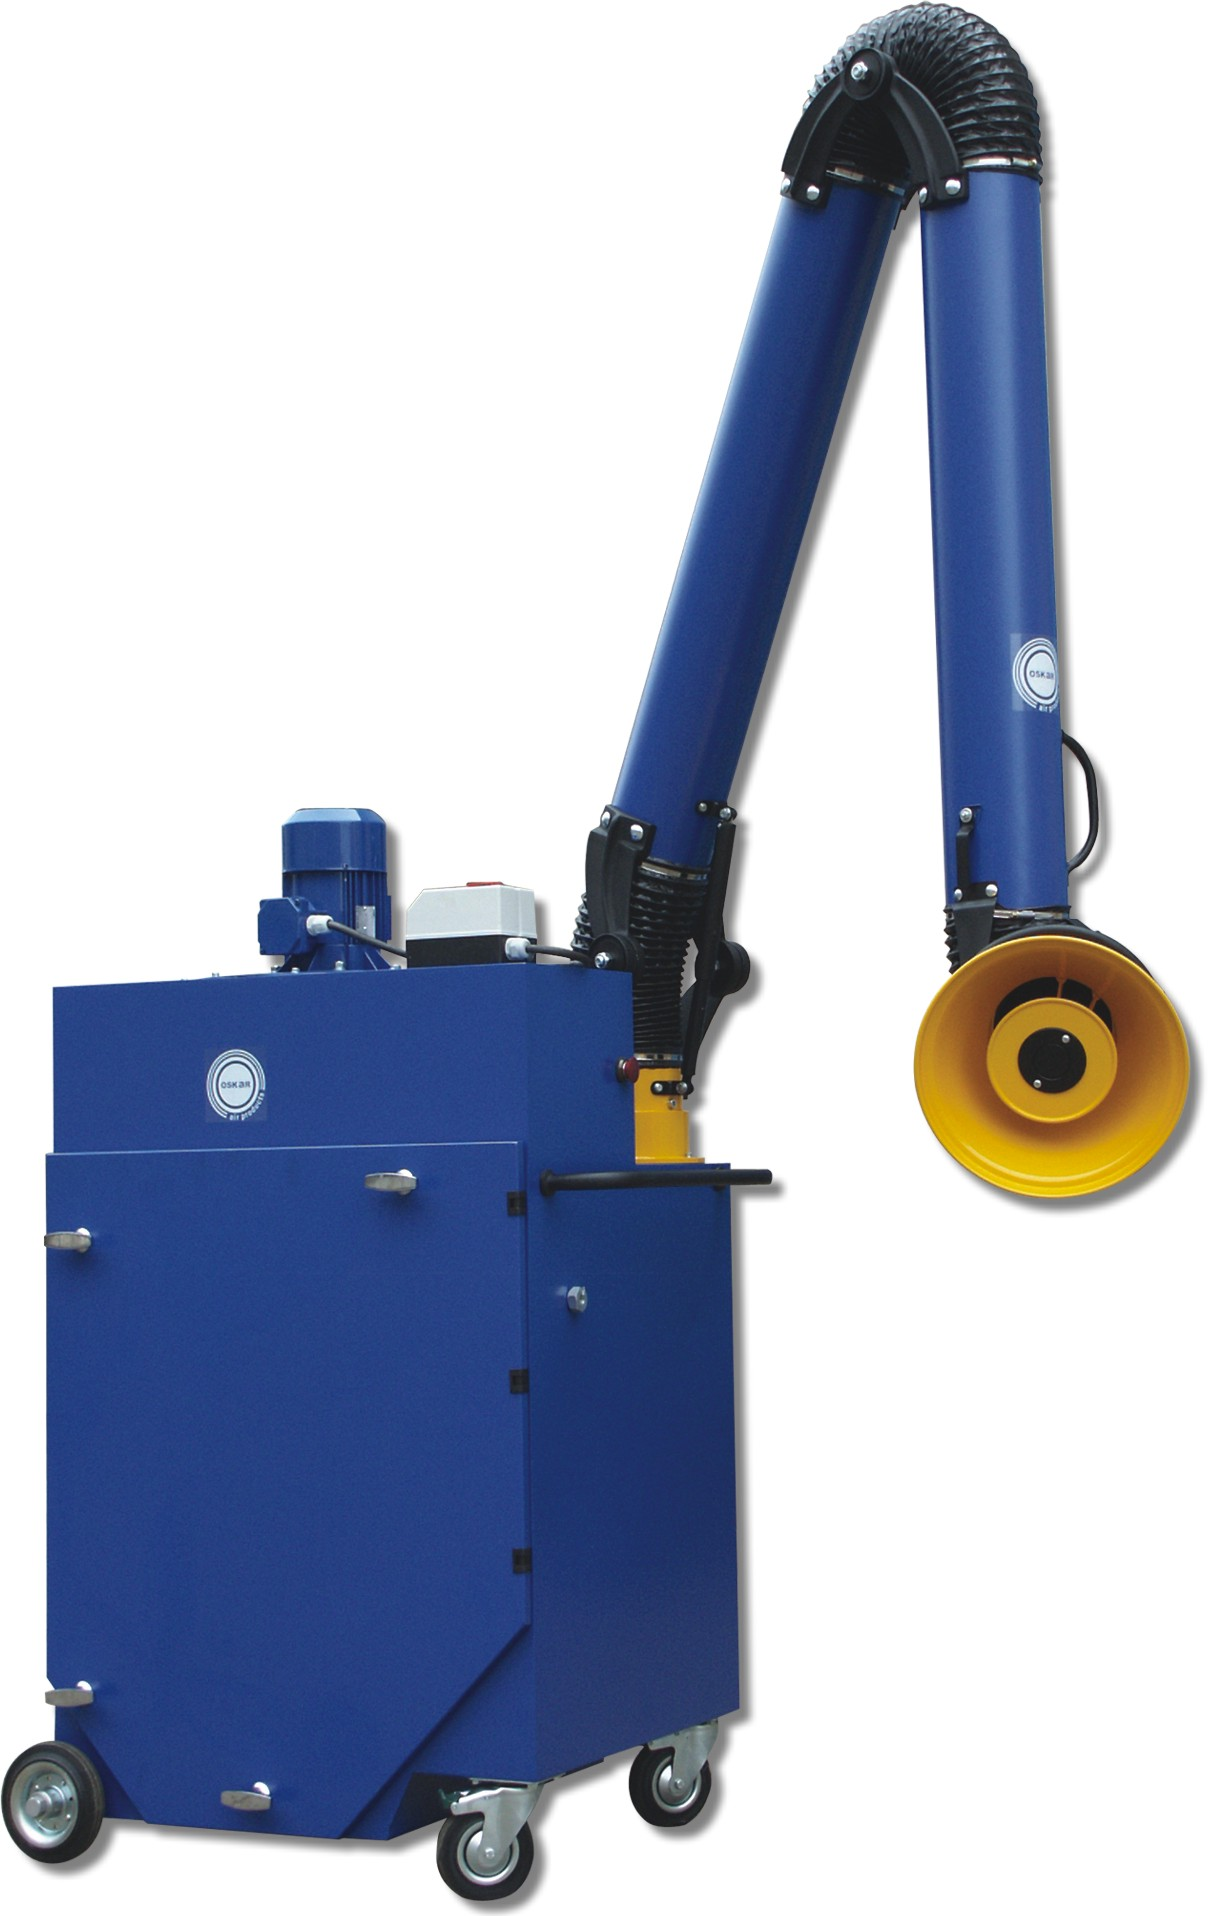 Industrial Downdraft Tables Fume Extraction Arm – Bench Mount